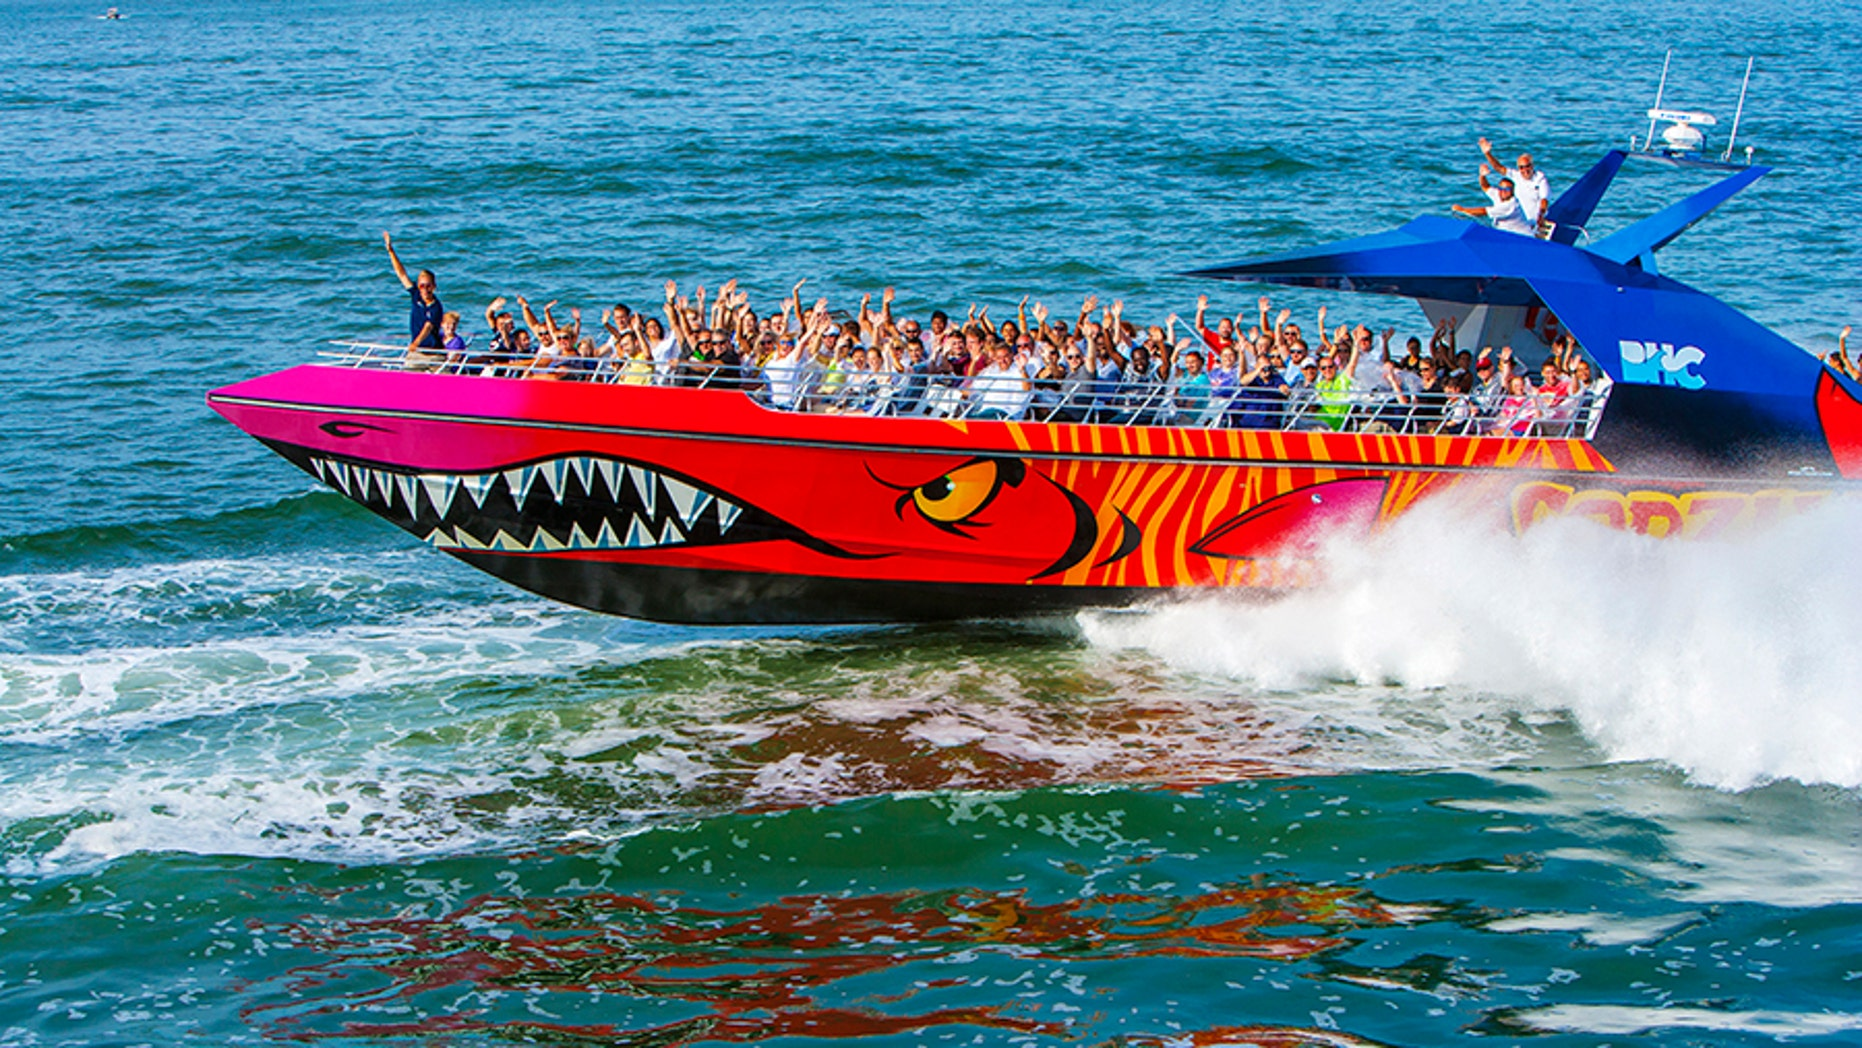 The large-capacity speedboat Codzilla was one of several boats involved in an accident Saturday.